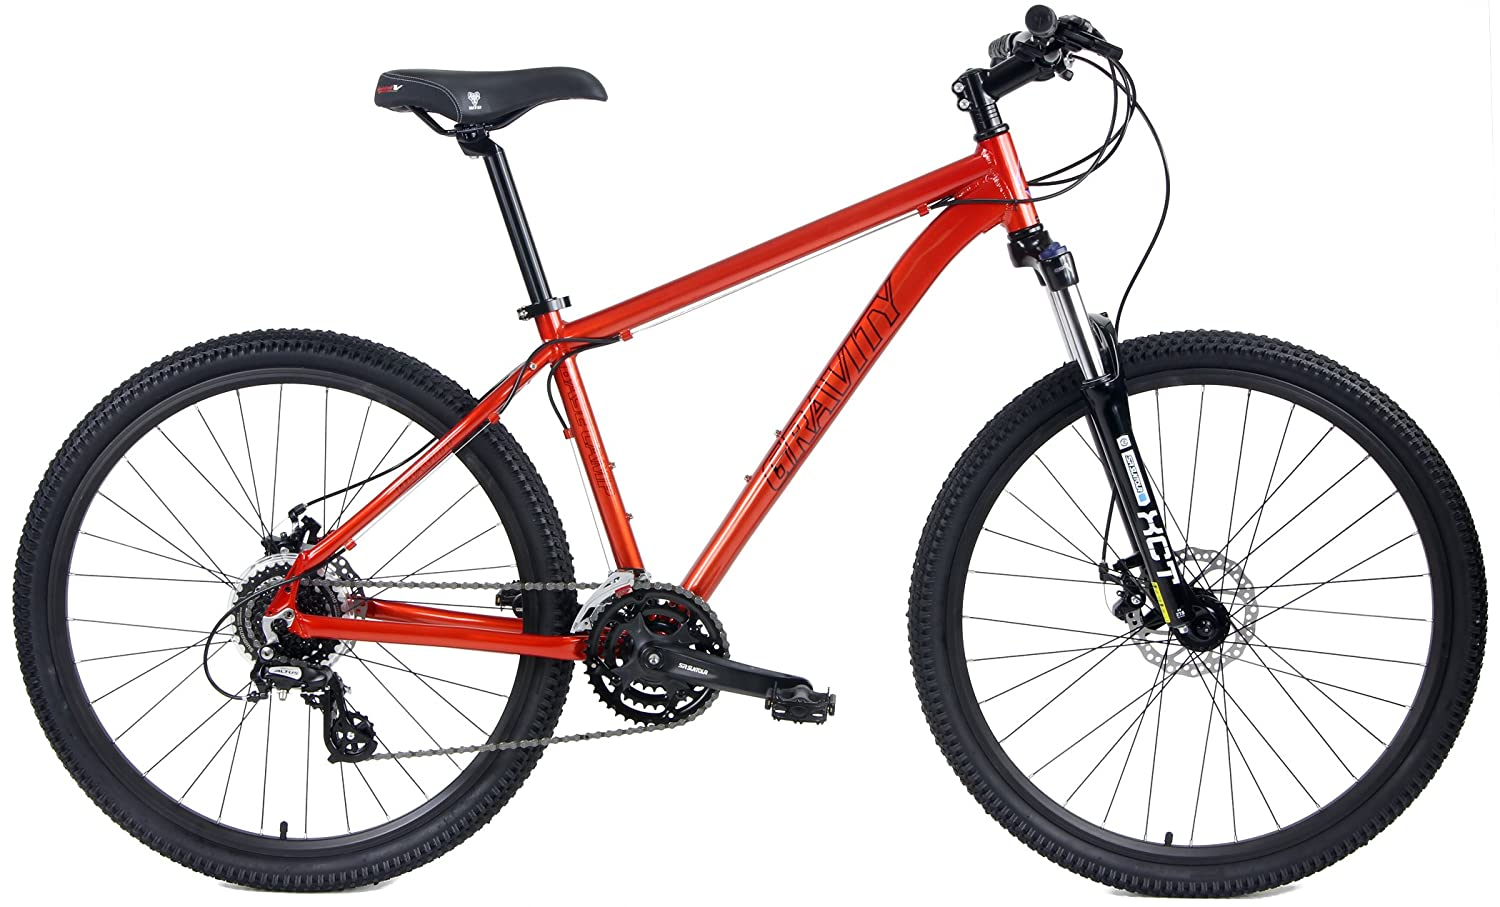 Gravity Basecamp 27.5 Disc Brake 24 Speed Front Suspension Mountain Bike